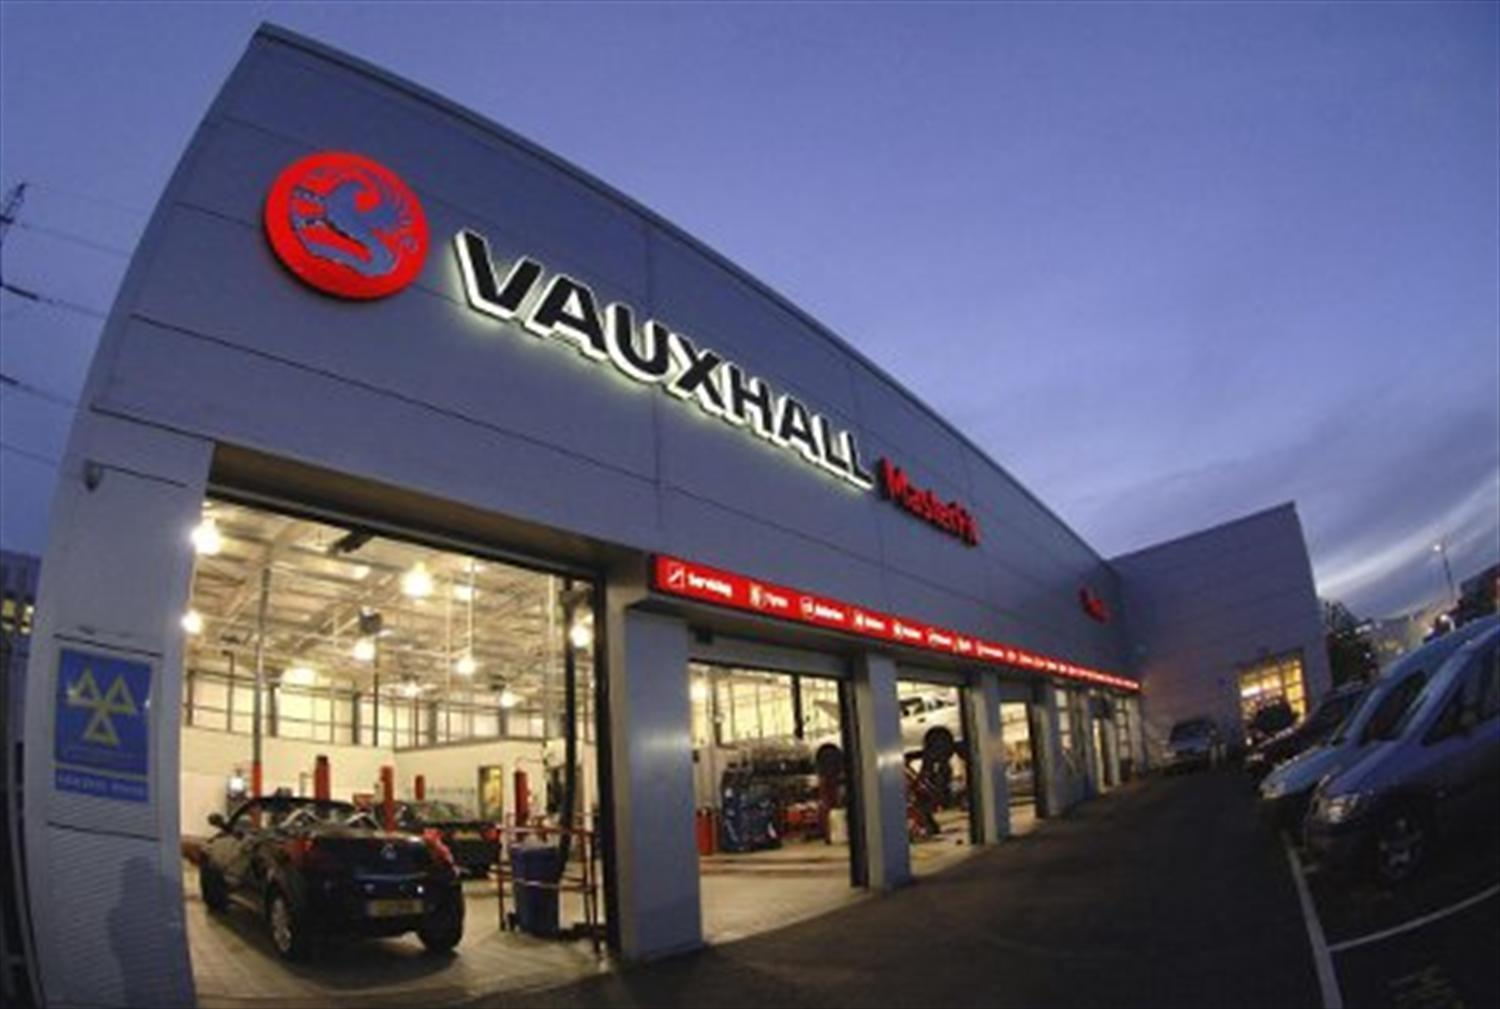 Vauxhall MasterFit offers while-you-wait service